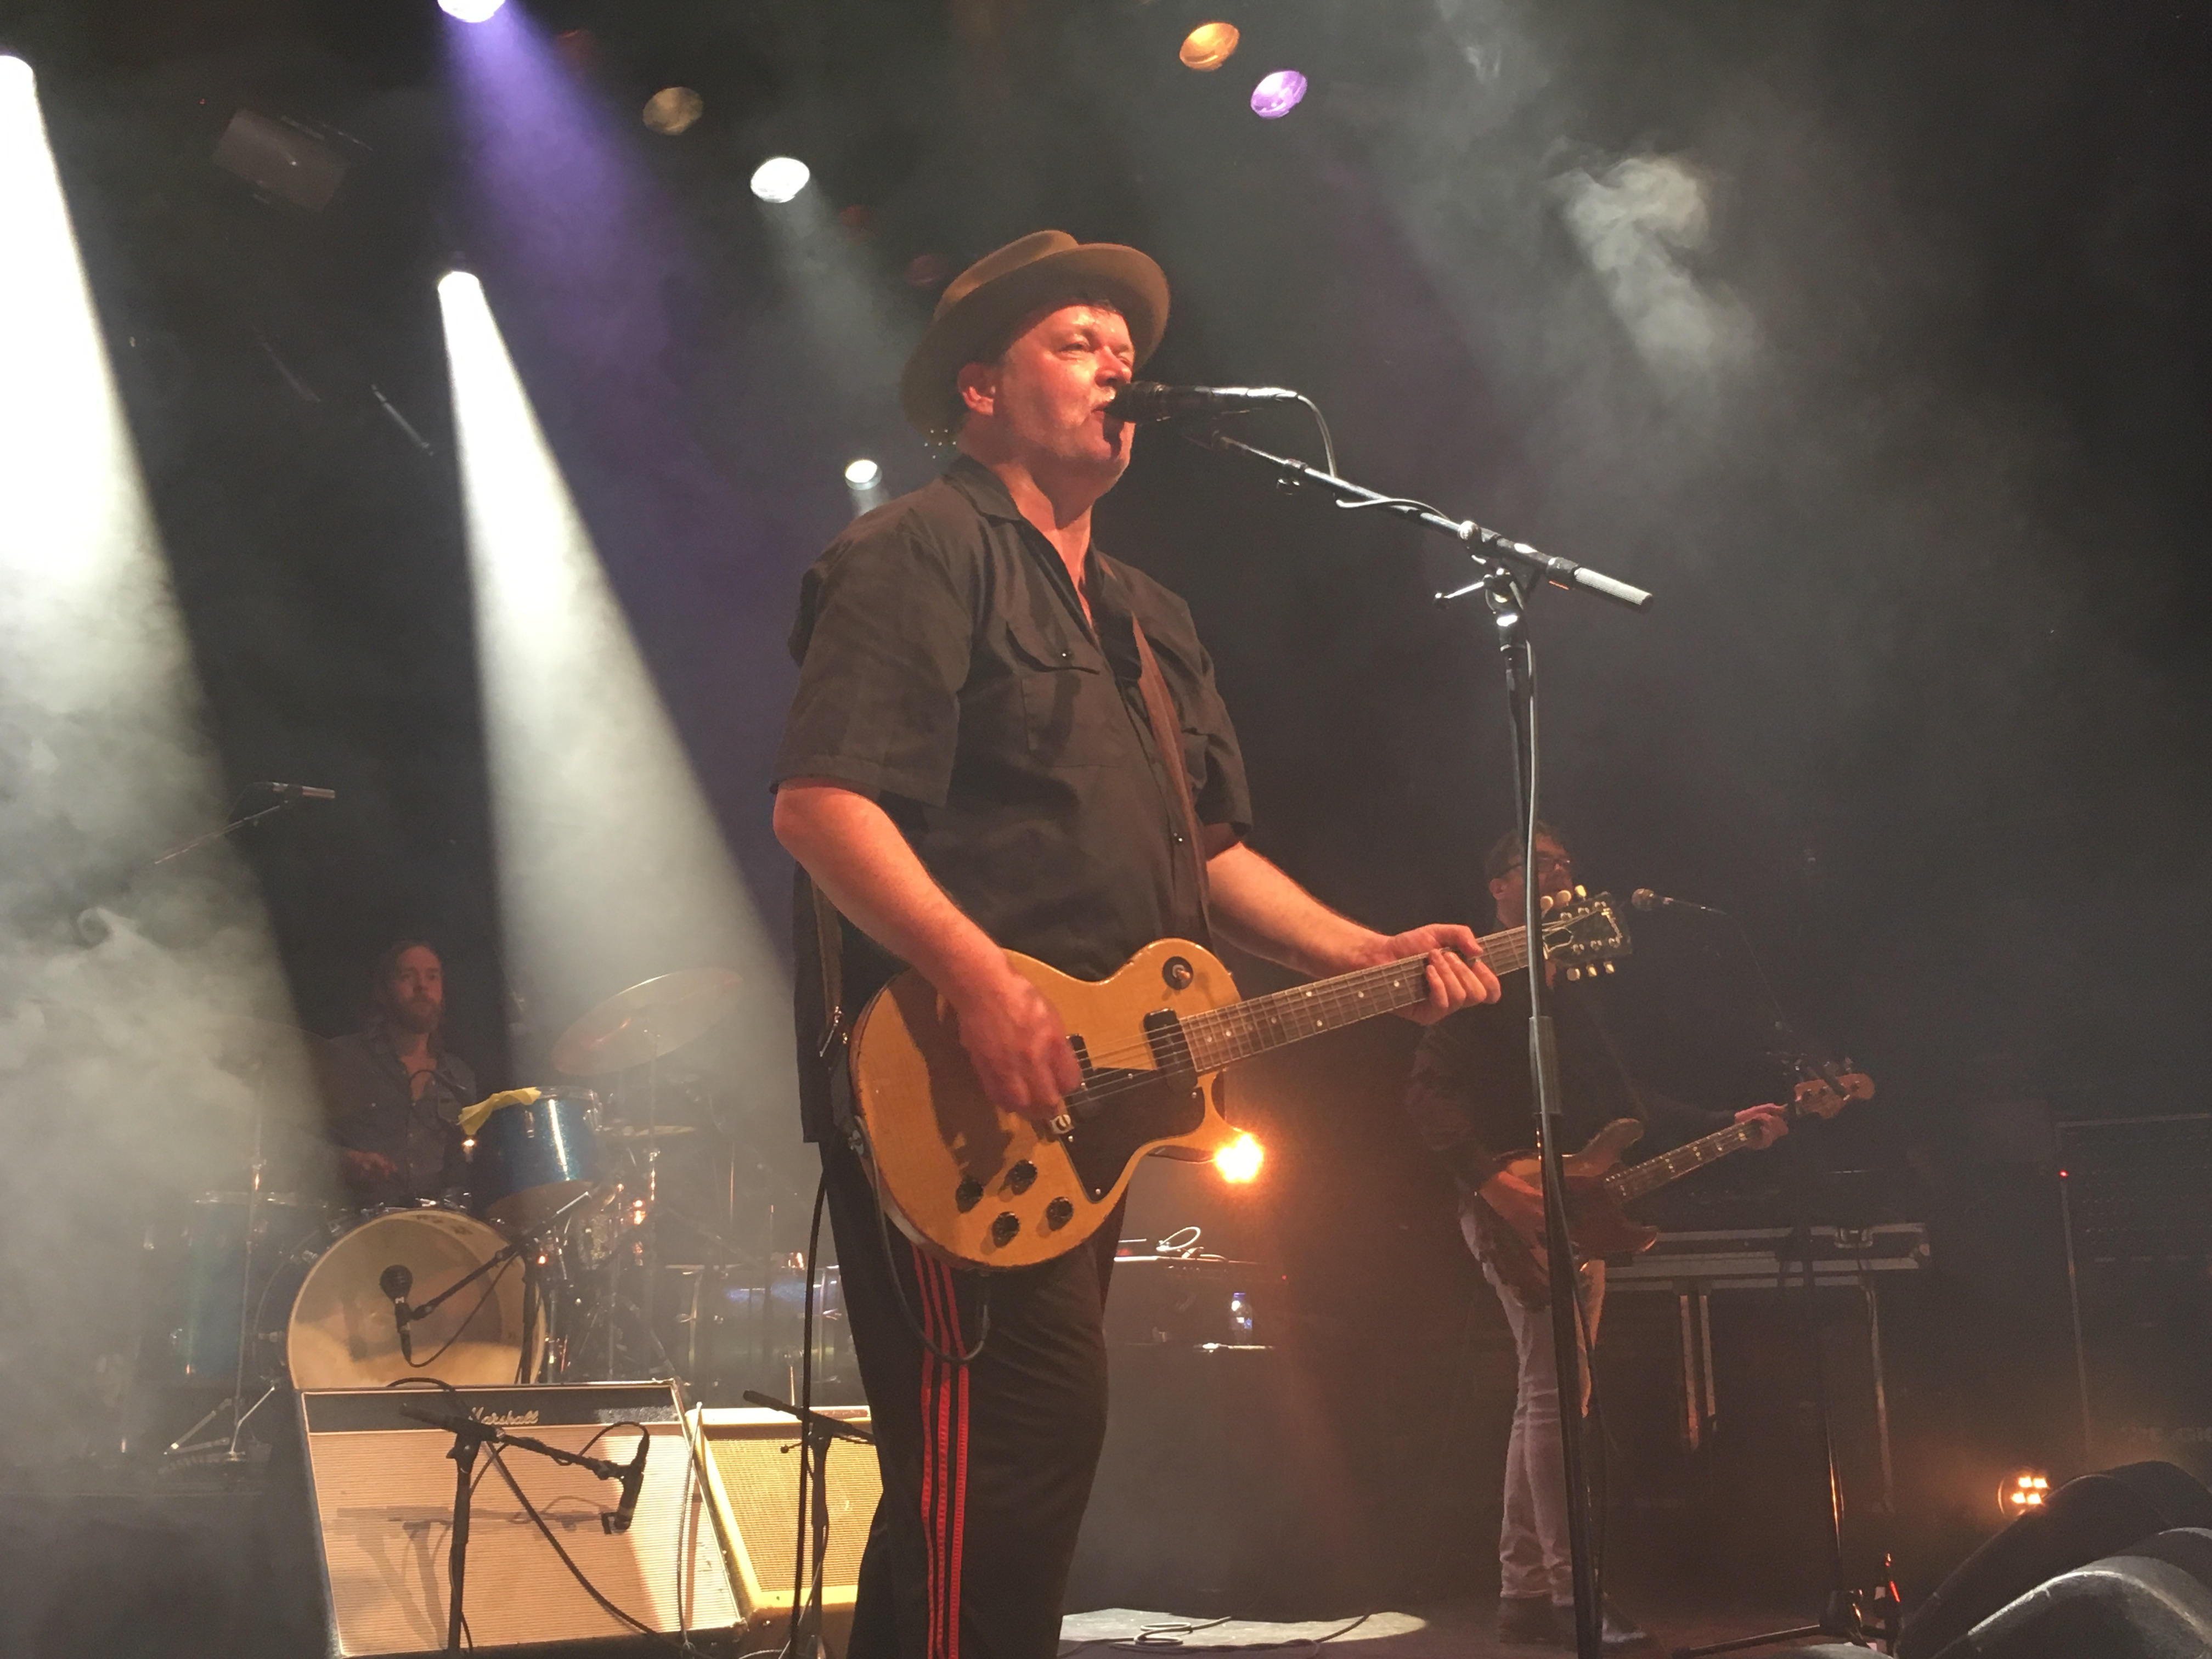 Concertreview: Lohues Elektrisch